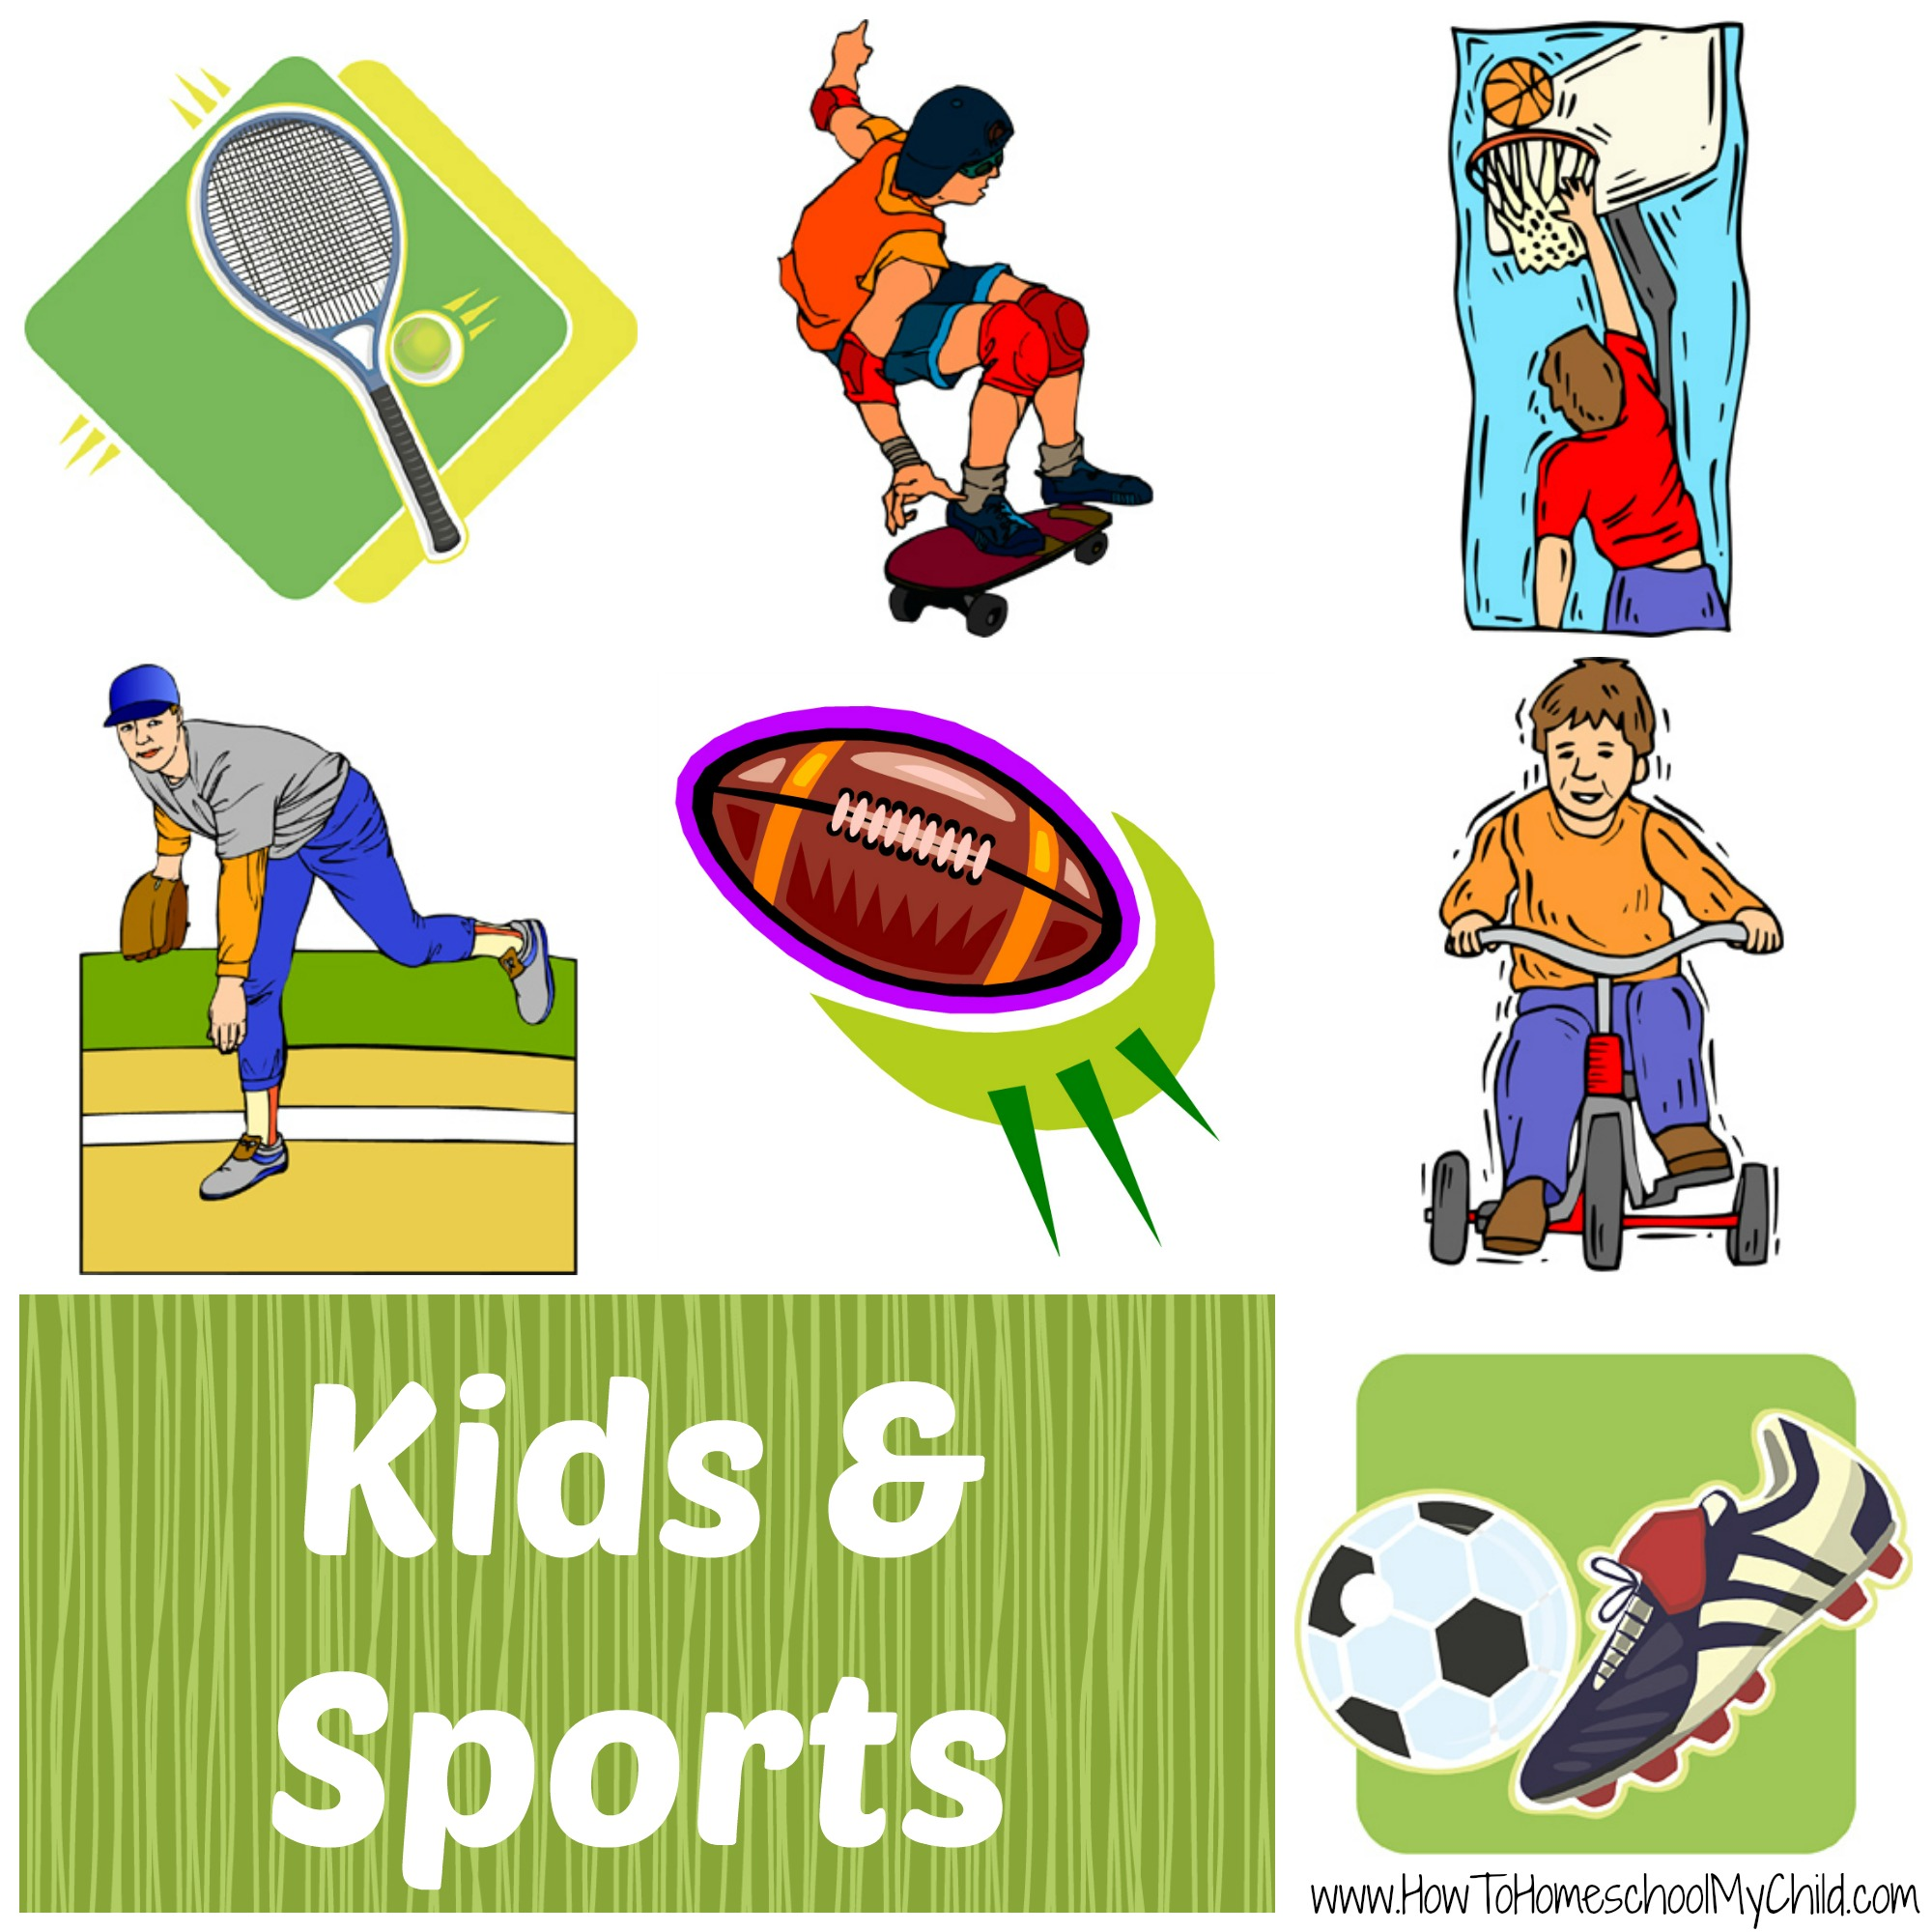 How do you keep from burning out with your kids in sports? Read my thoughts at www.HowToHomeschoolMyChild.com